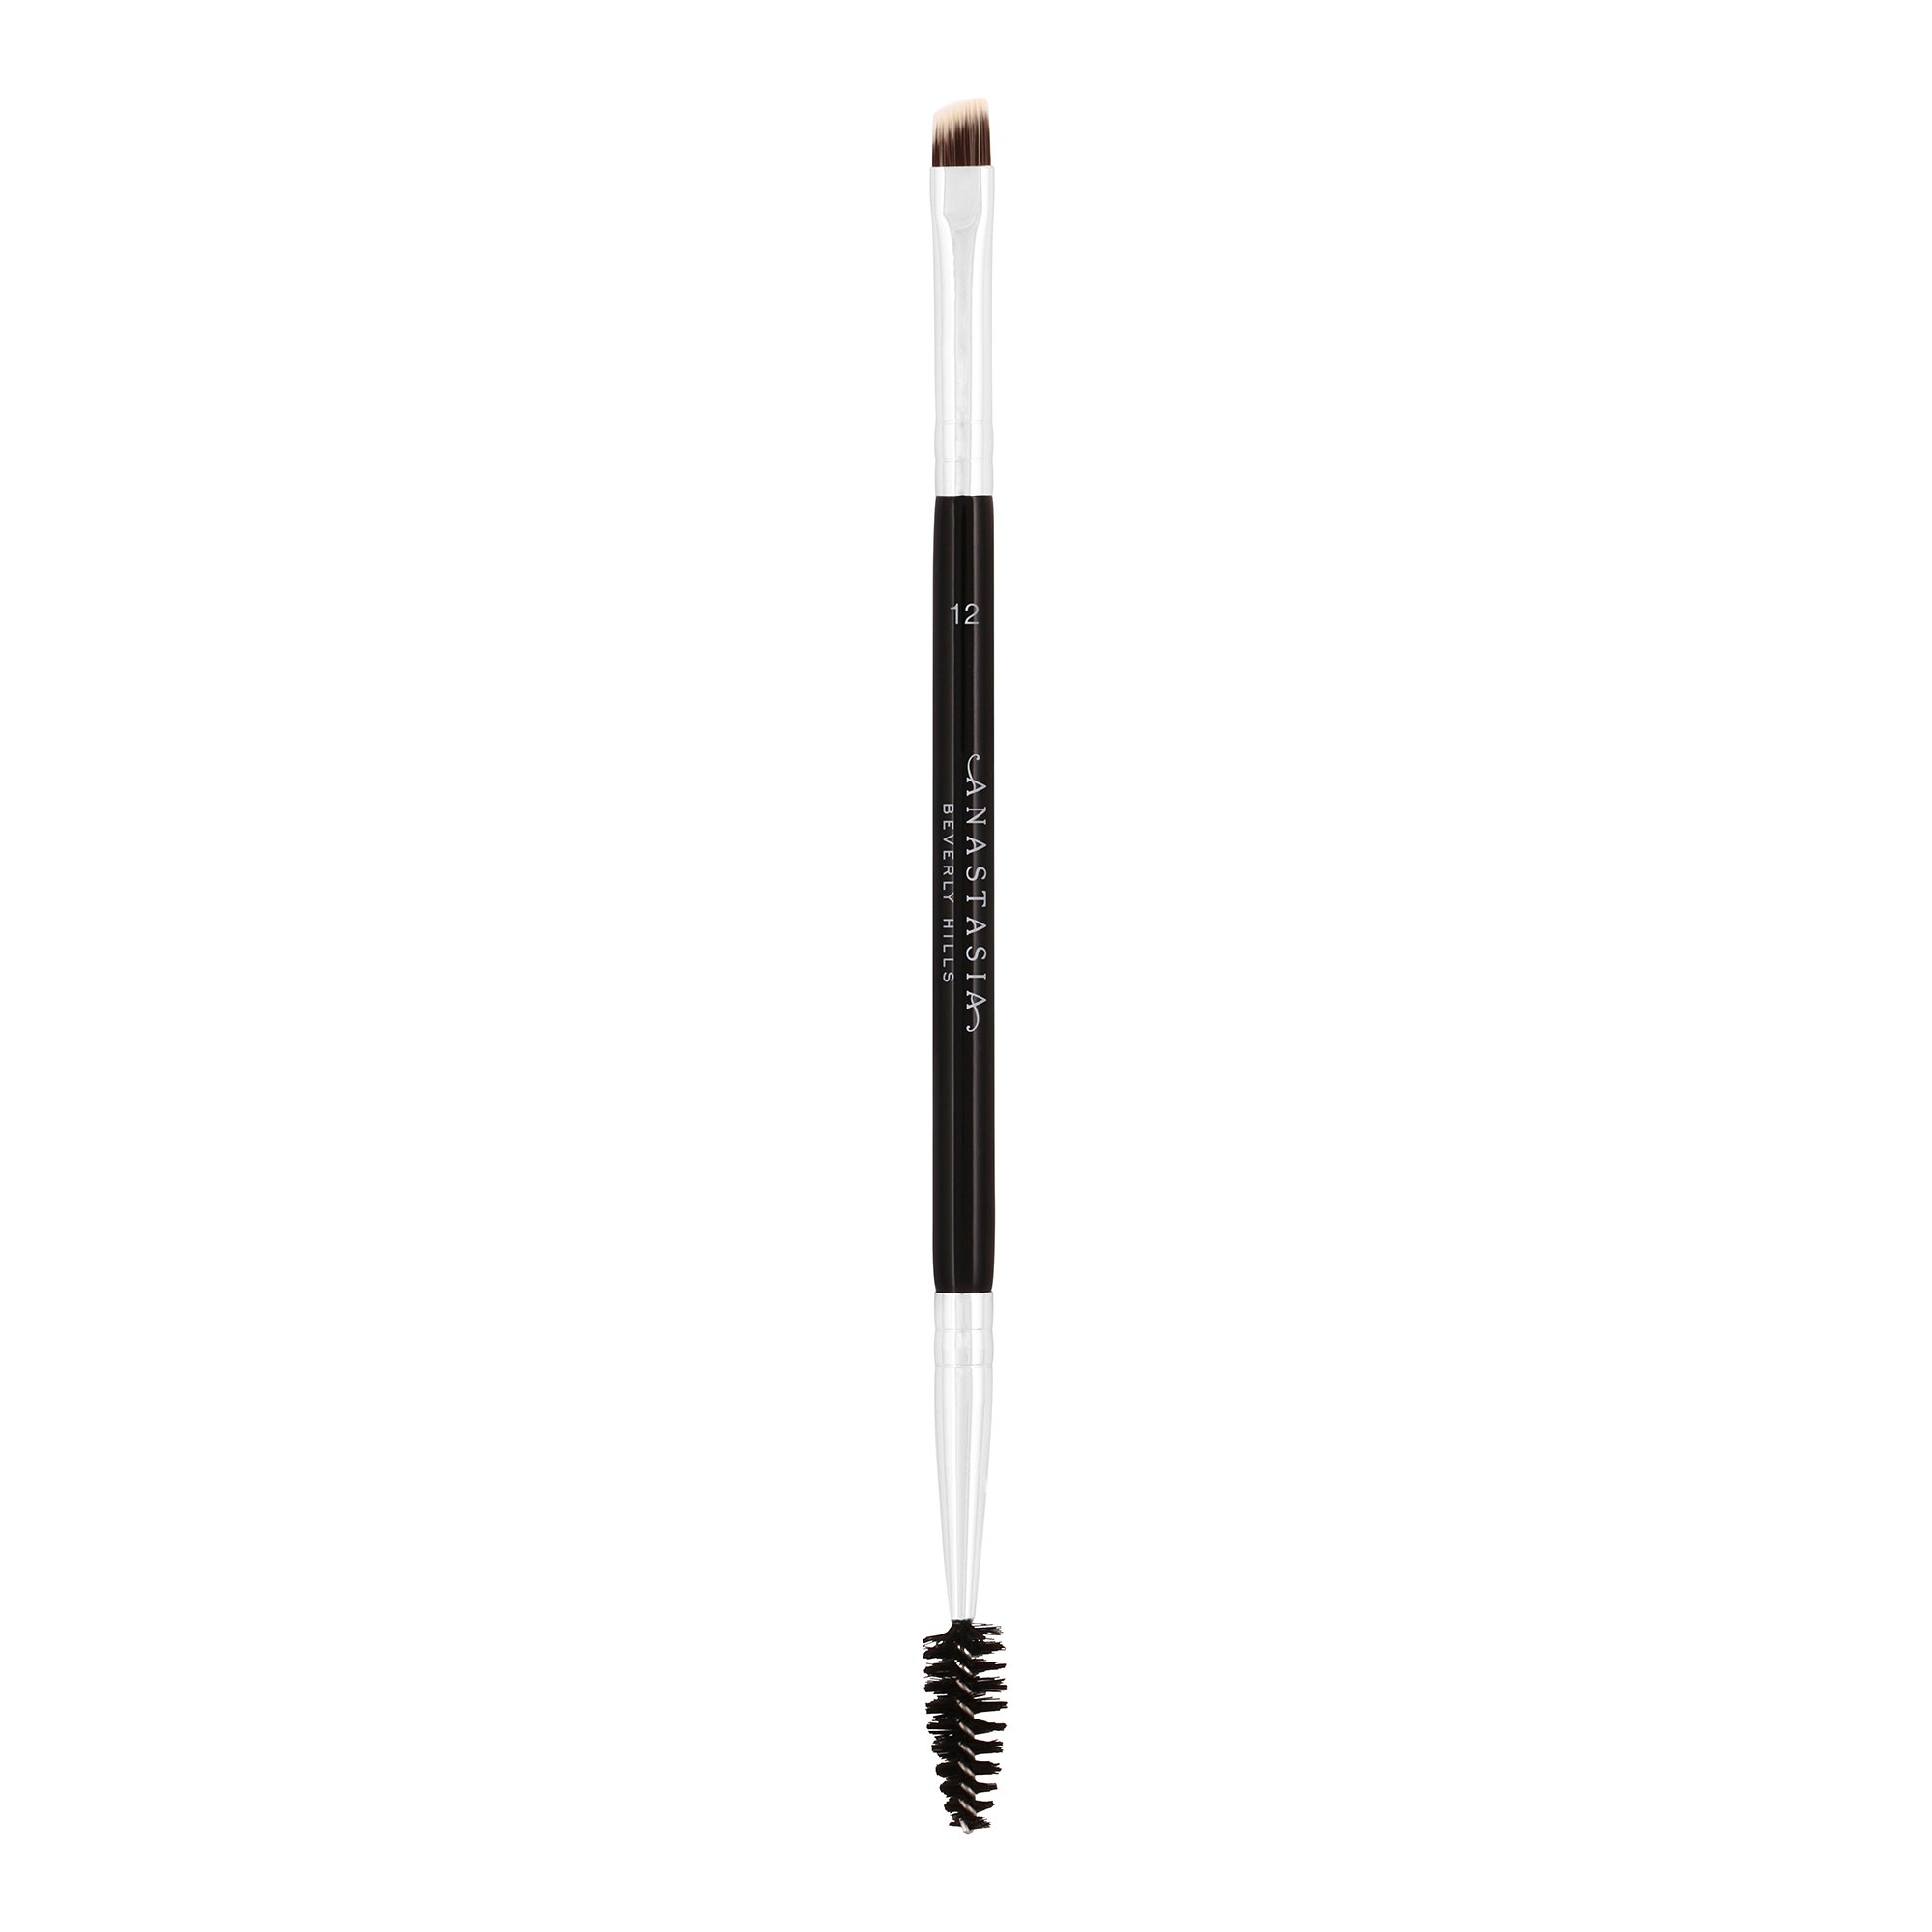 Anastasia Beverly Hills Duo Brush #12. Dual-Ended Firm Angled  Eyebrow Brush with Spooley. (Synthetic Bristles)